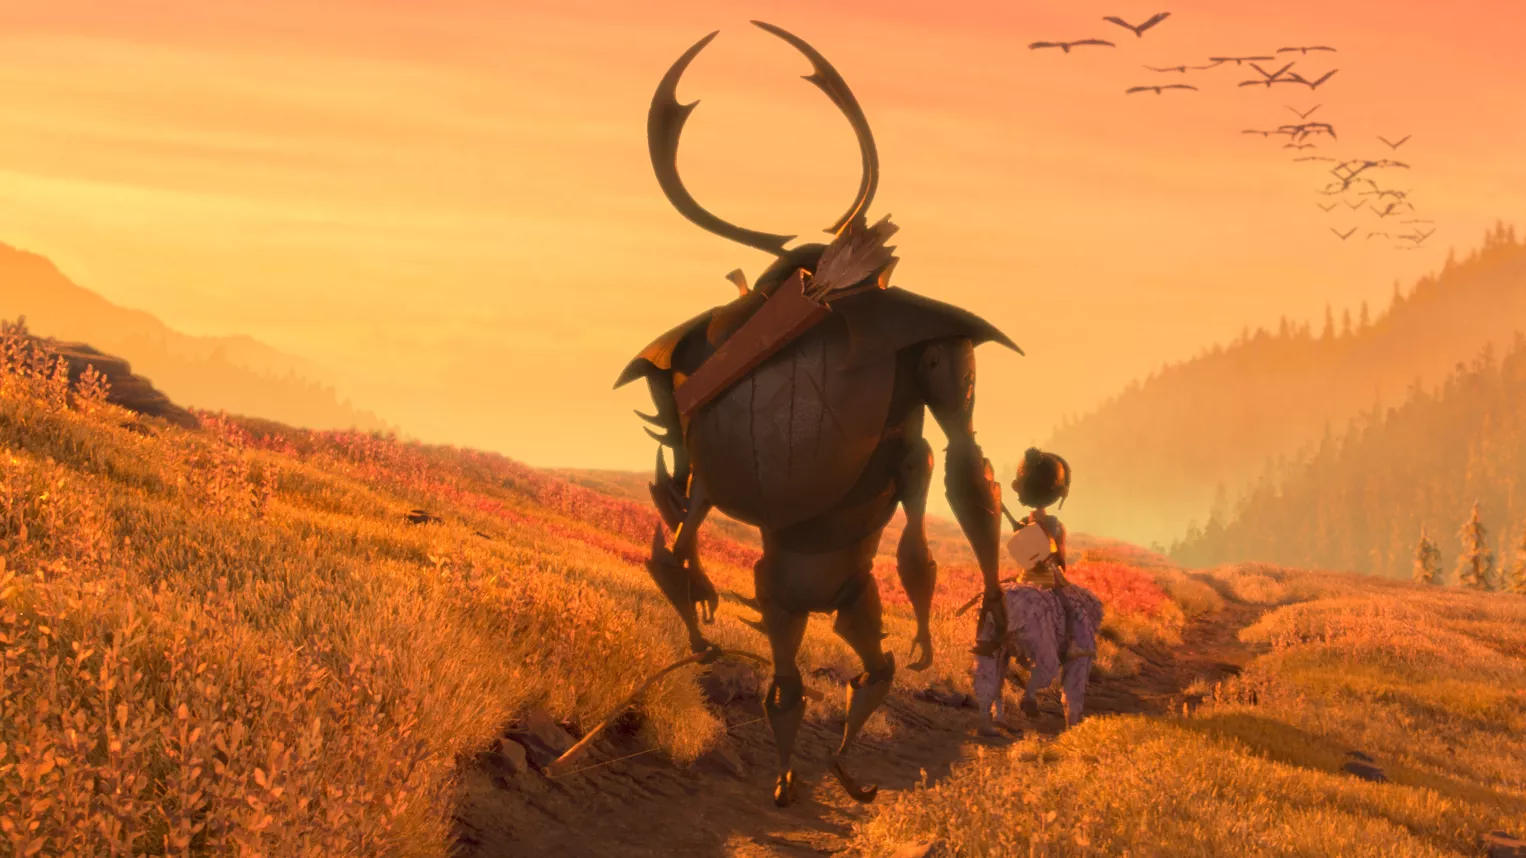 Watch This Hypnotic Video From Laika Studios About Their Creative Process